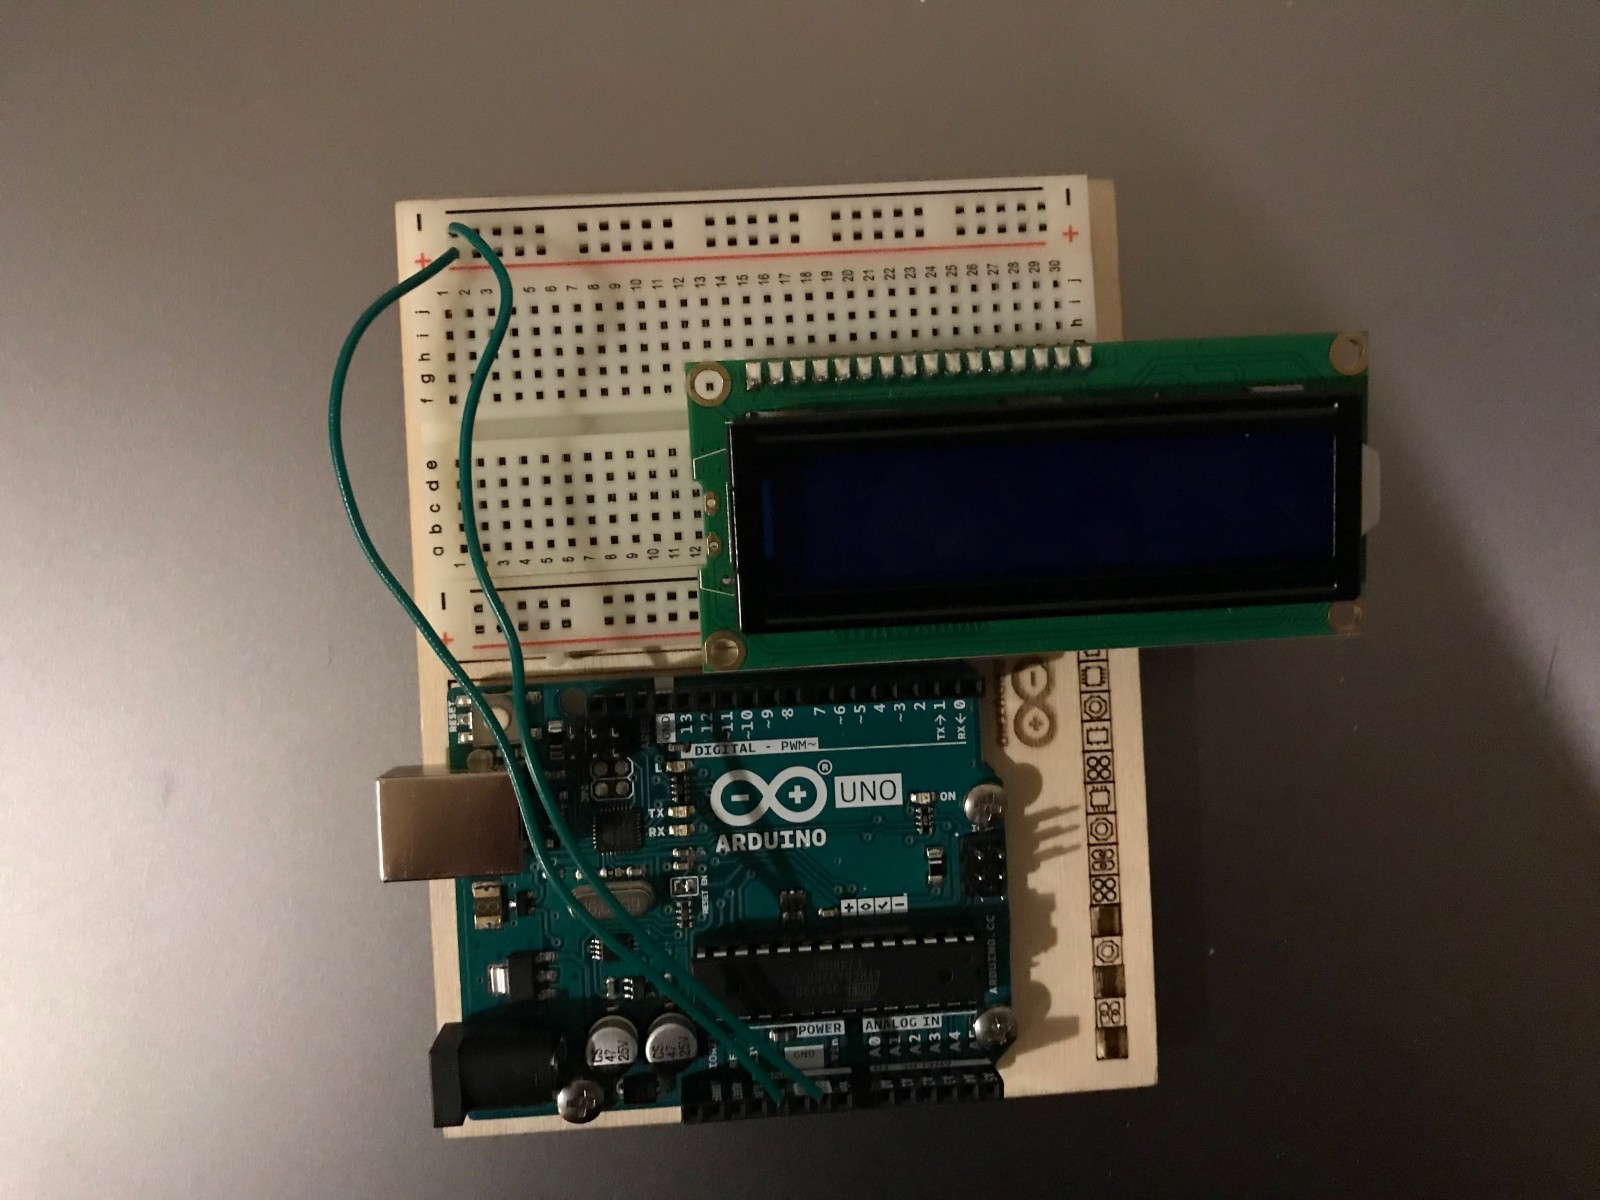 How To Make A Digital Voltmeter Using Arduino Freecodecamporg Build Circuits For Beginners That Can Be Built On Breadboard This Is The Basic Setup After Step 1